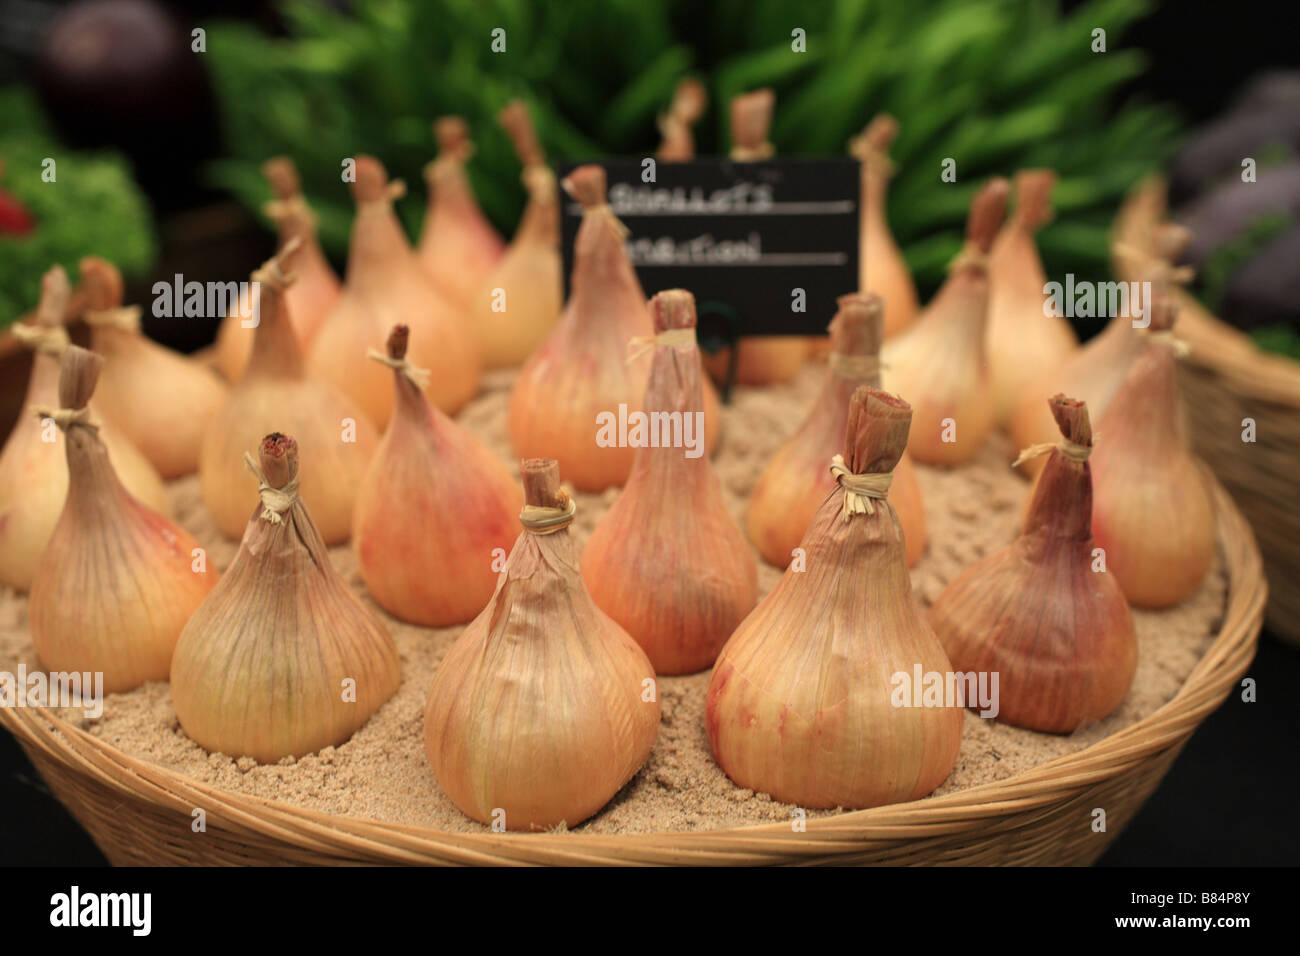 'Onion' set bulbs planted in a terracotta pot as part of a RHS vegetable display. Beautifully arranged for - Stock Image